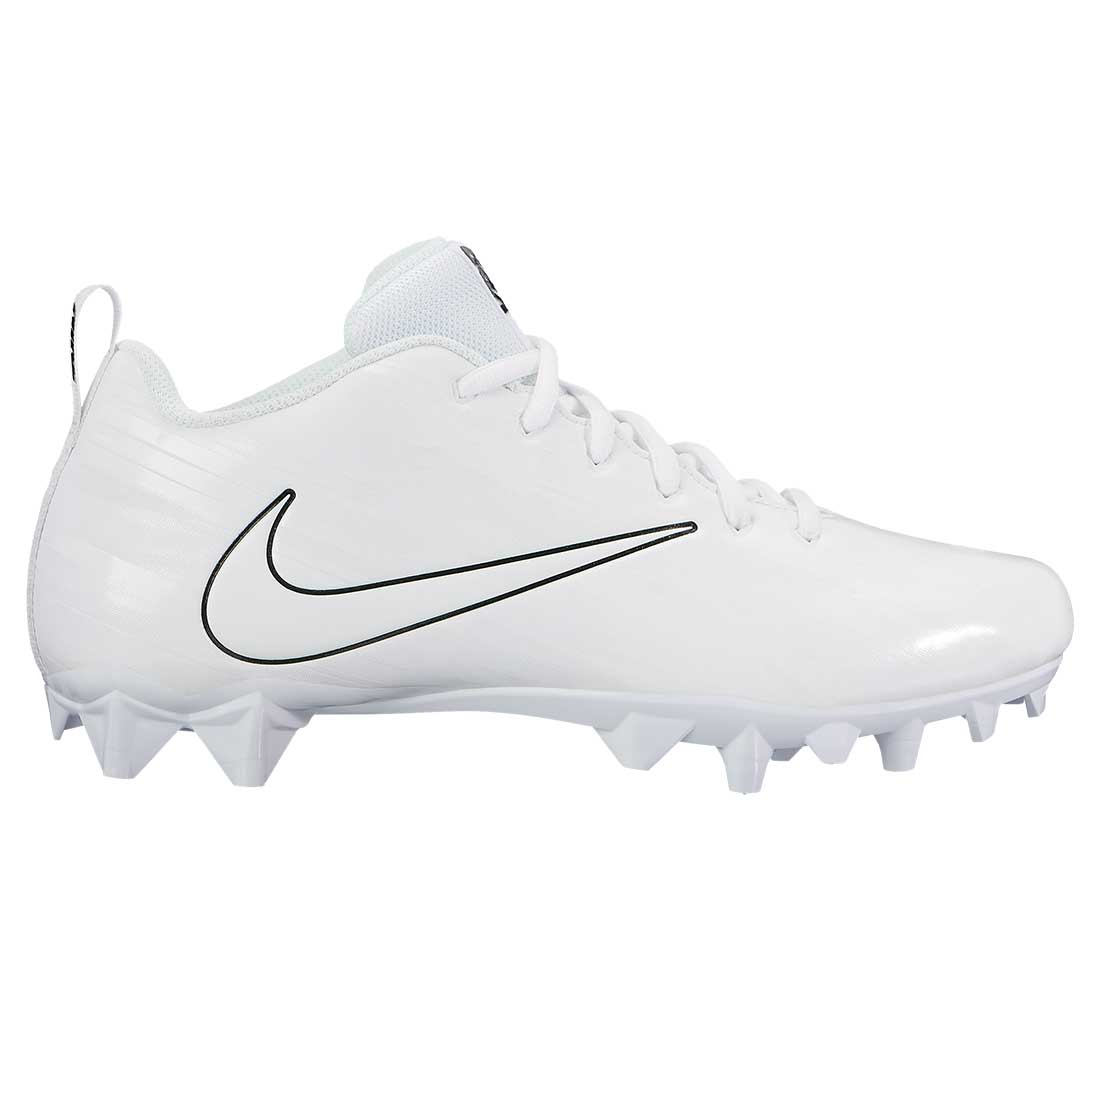 5cf6368a450e5 Nike Vapor Varsity Low LAX Cleat - longstreth.com